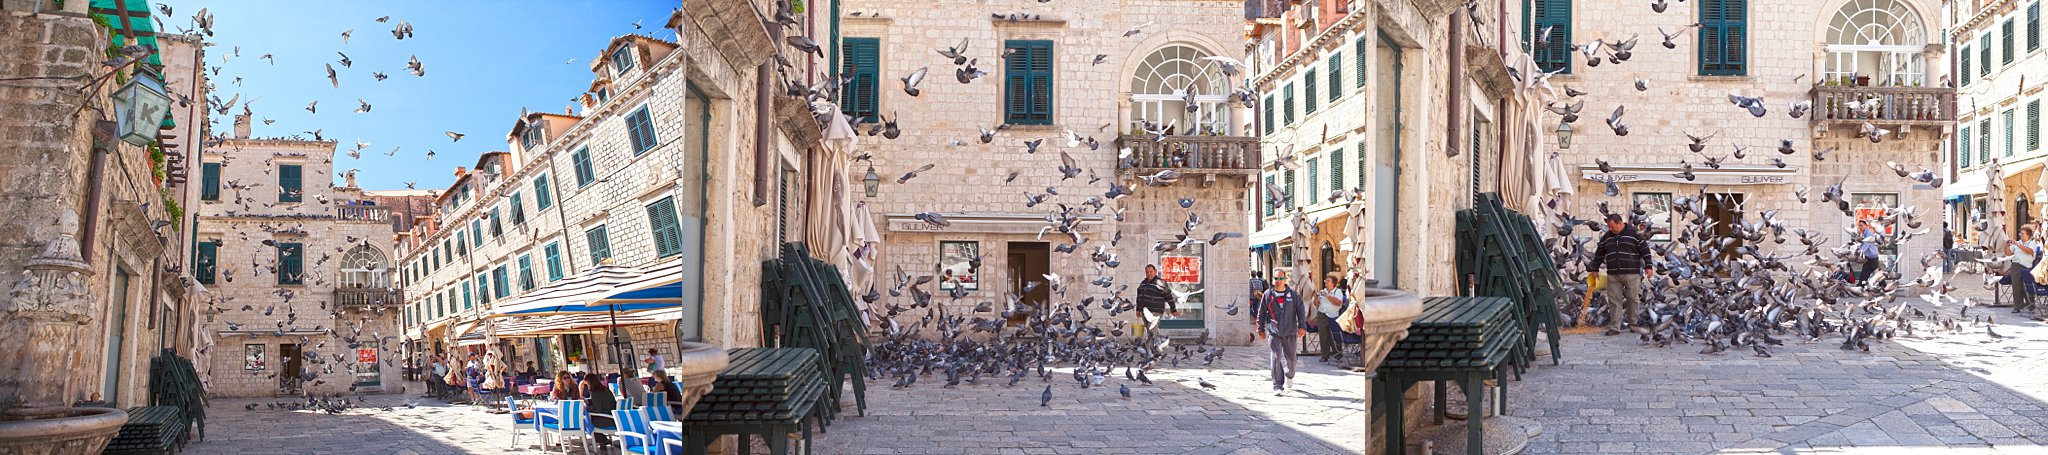 Pigeon feeding at the Square of Loggia